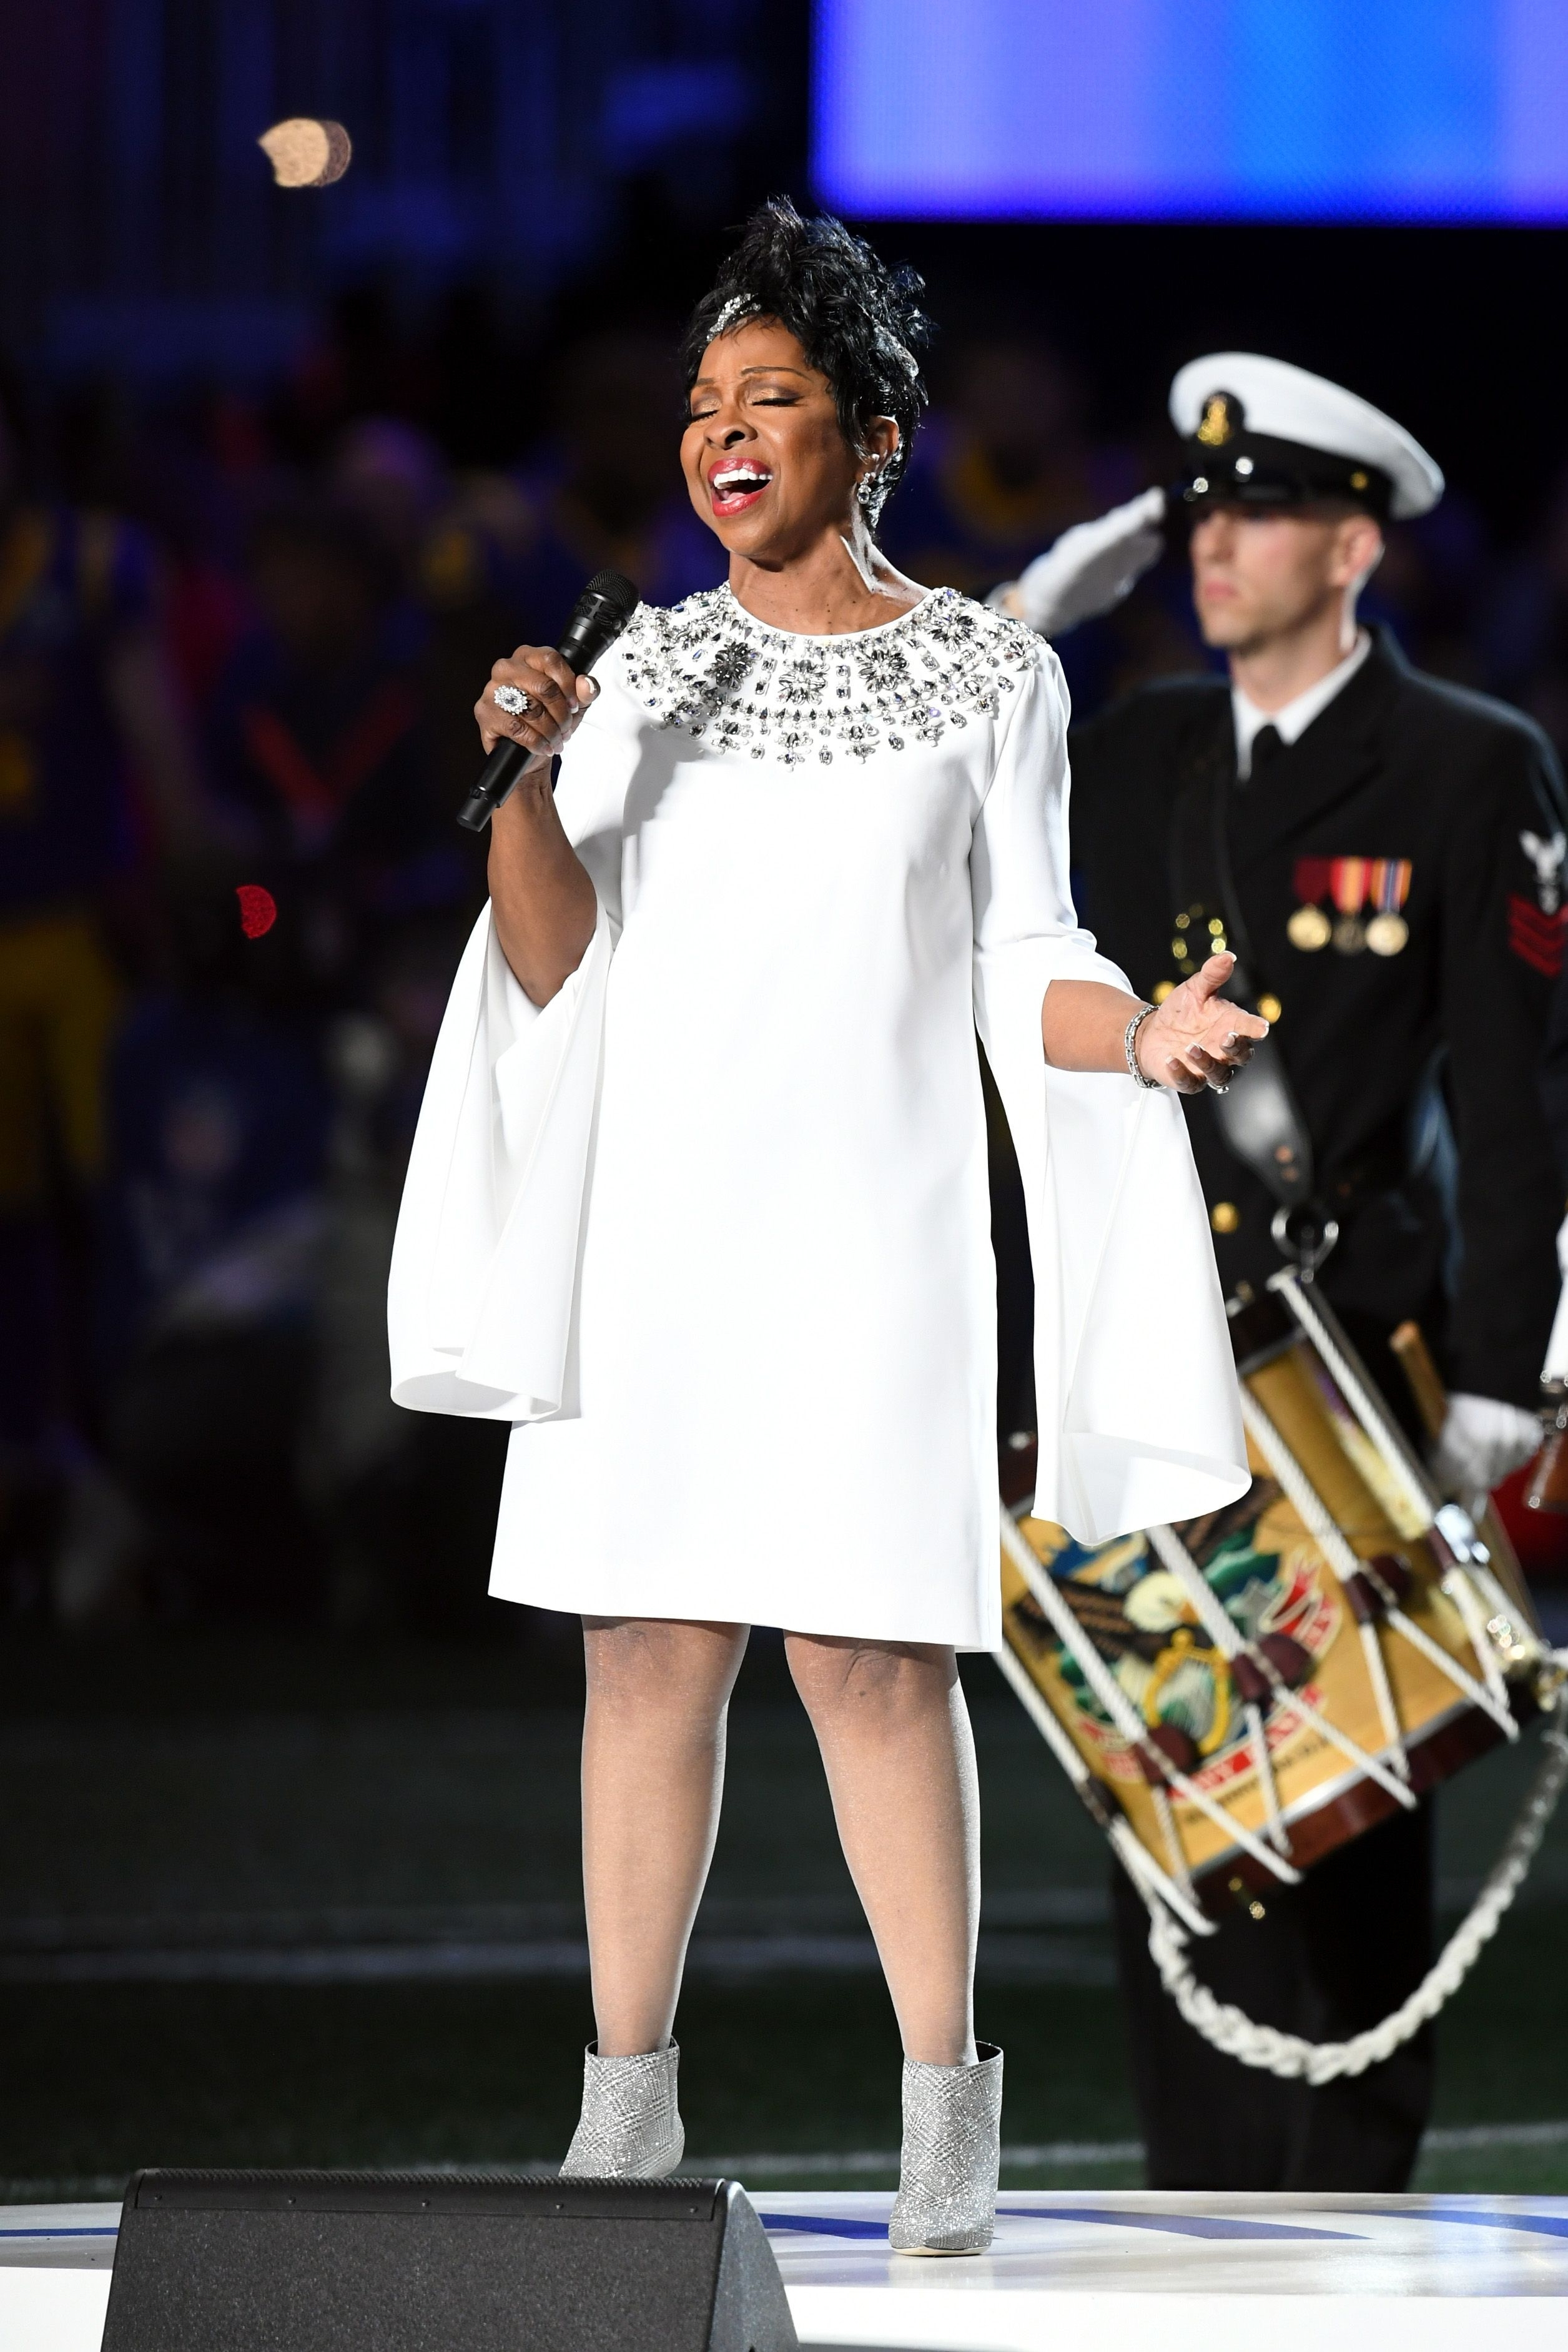 Watch Gladys Knight Sing The National Anthem At The Super pertaining to Super Bowl Gladys Knight